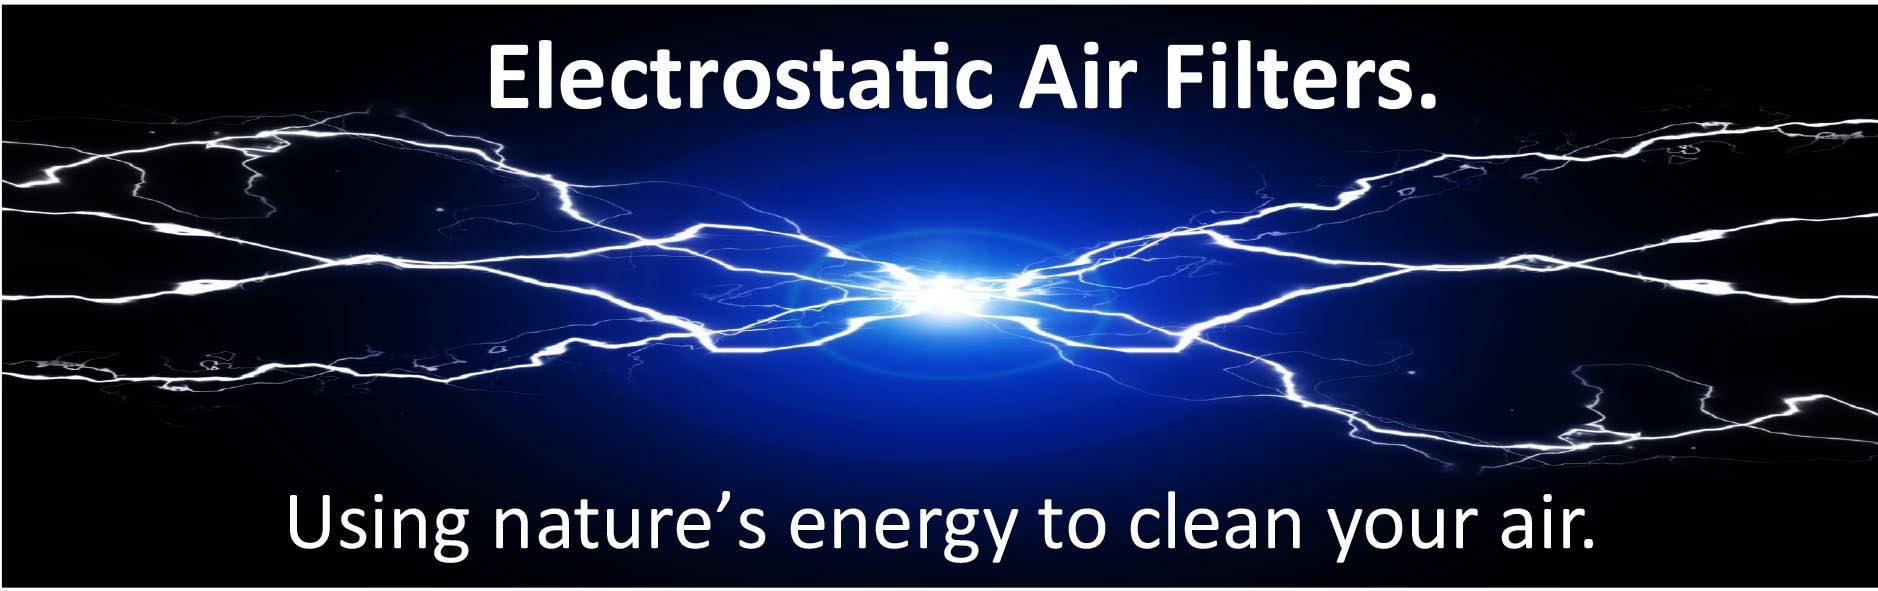 Electrostatic Air Filters - Using nature's energy to clean your air.